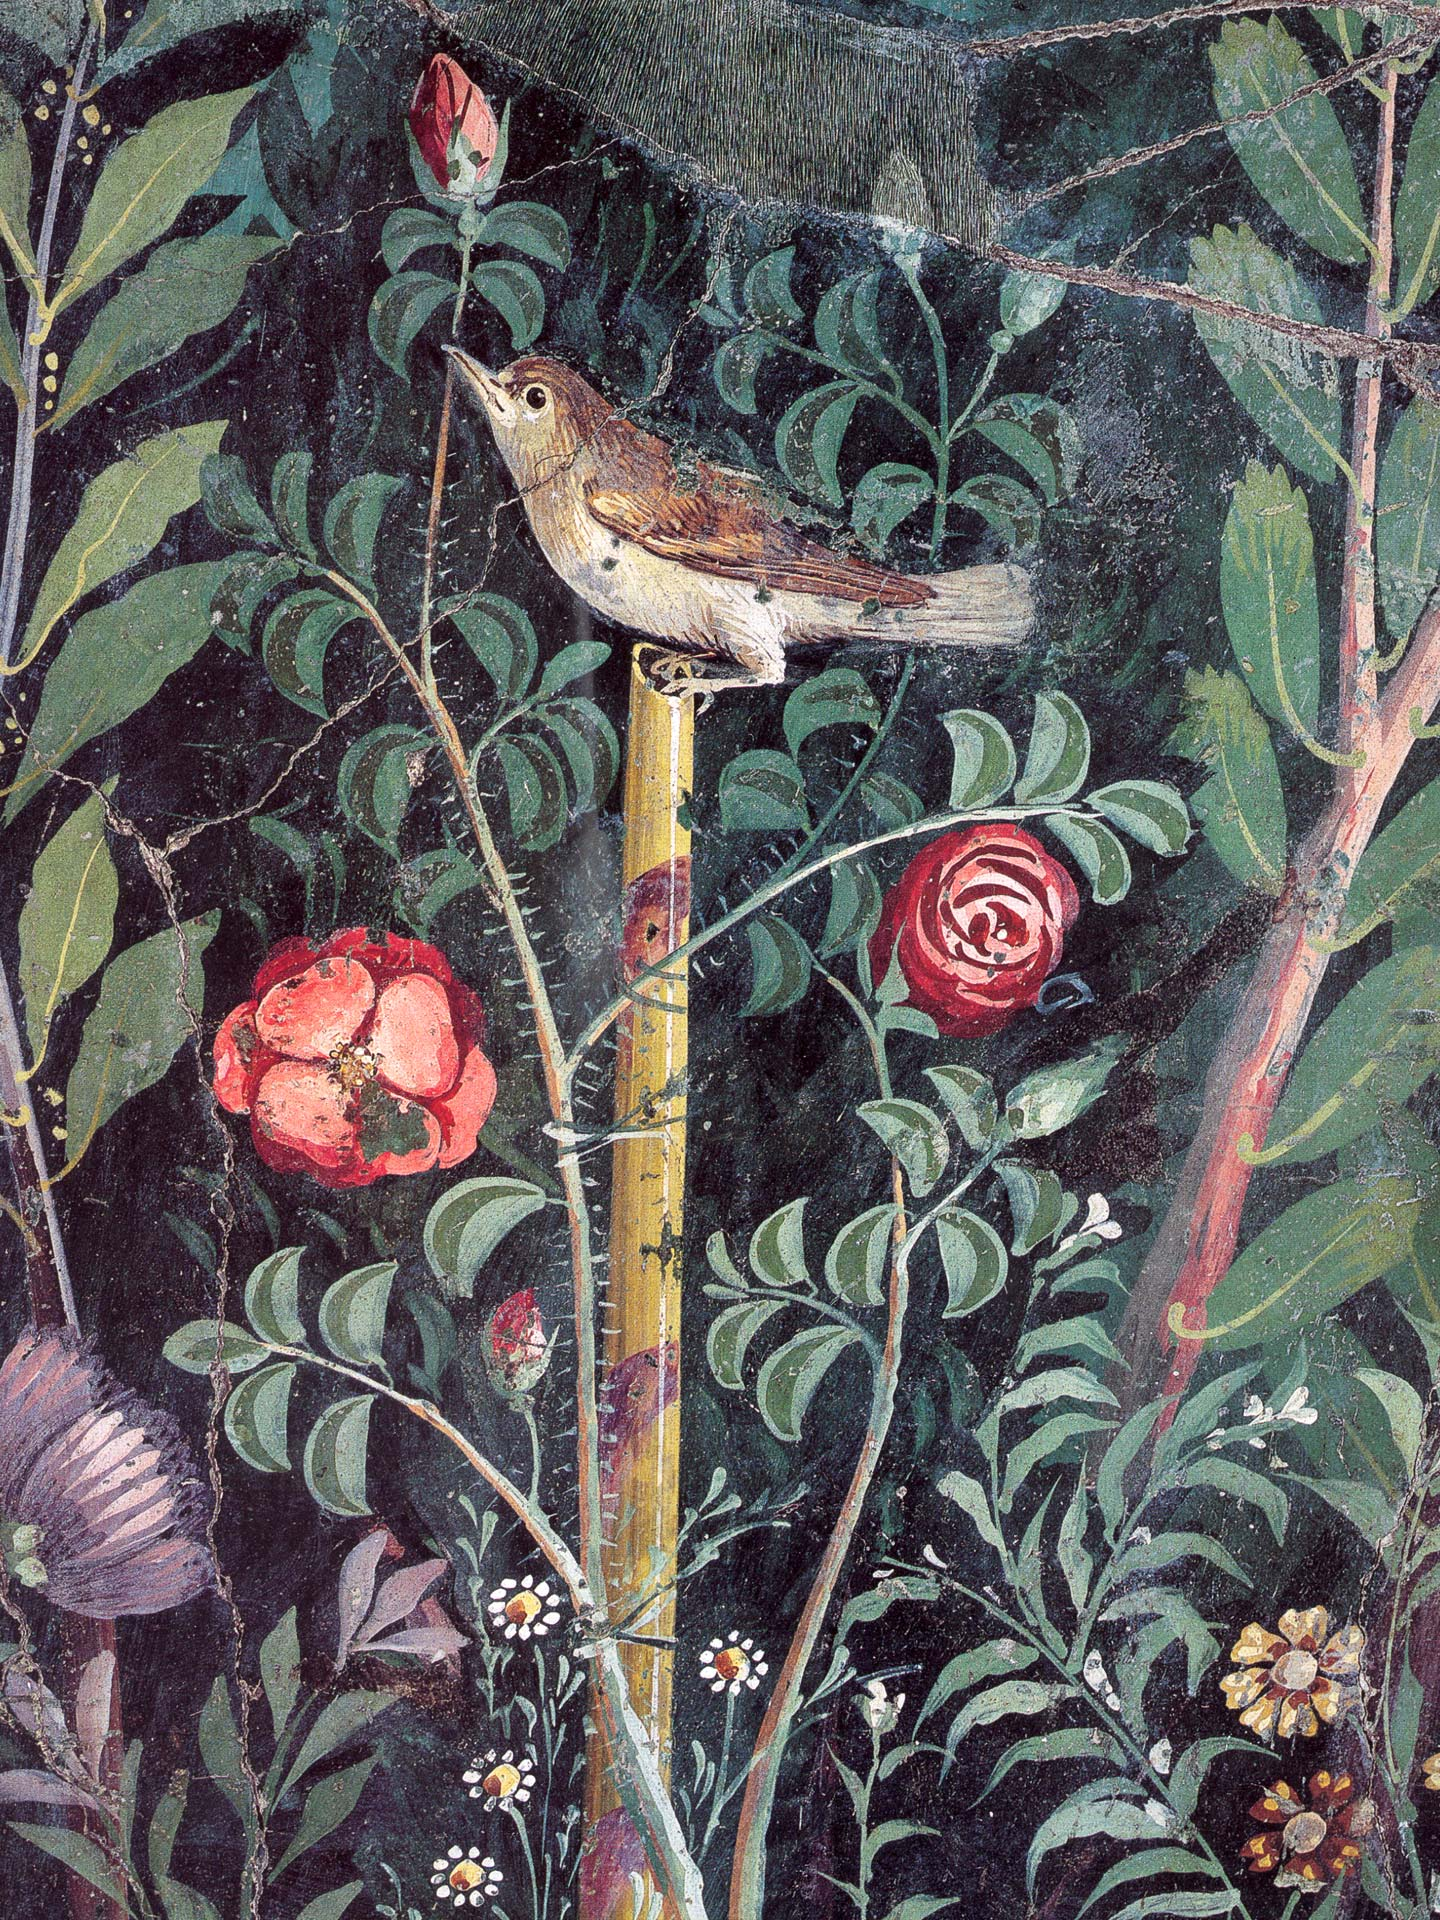 Garden from fresco of the triclinium of the House of the Golden Bracelet, Pompeii, Italy